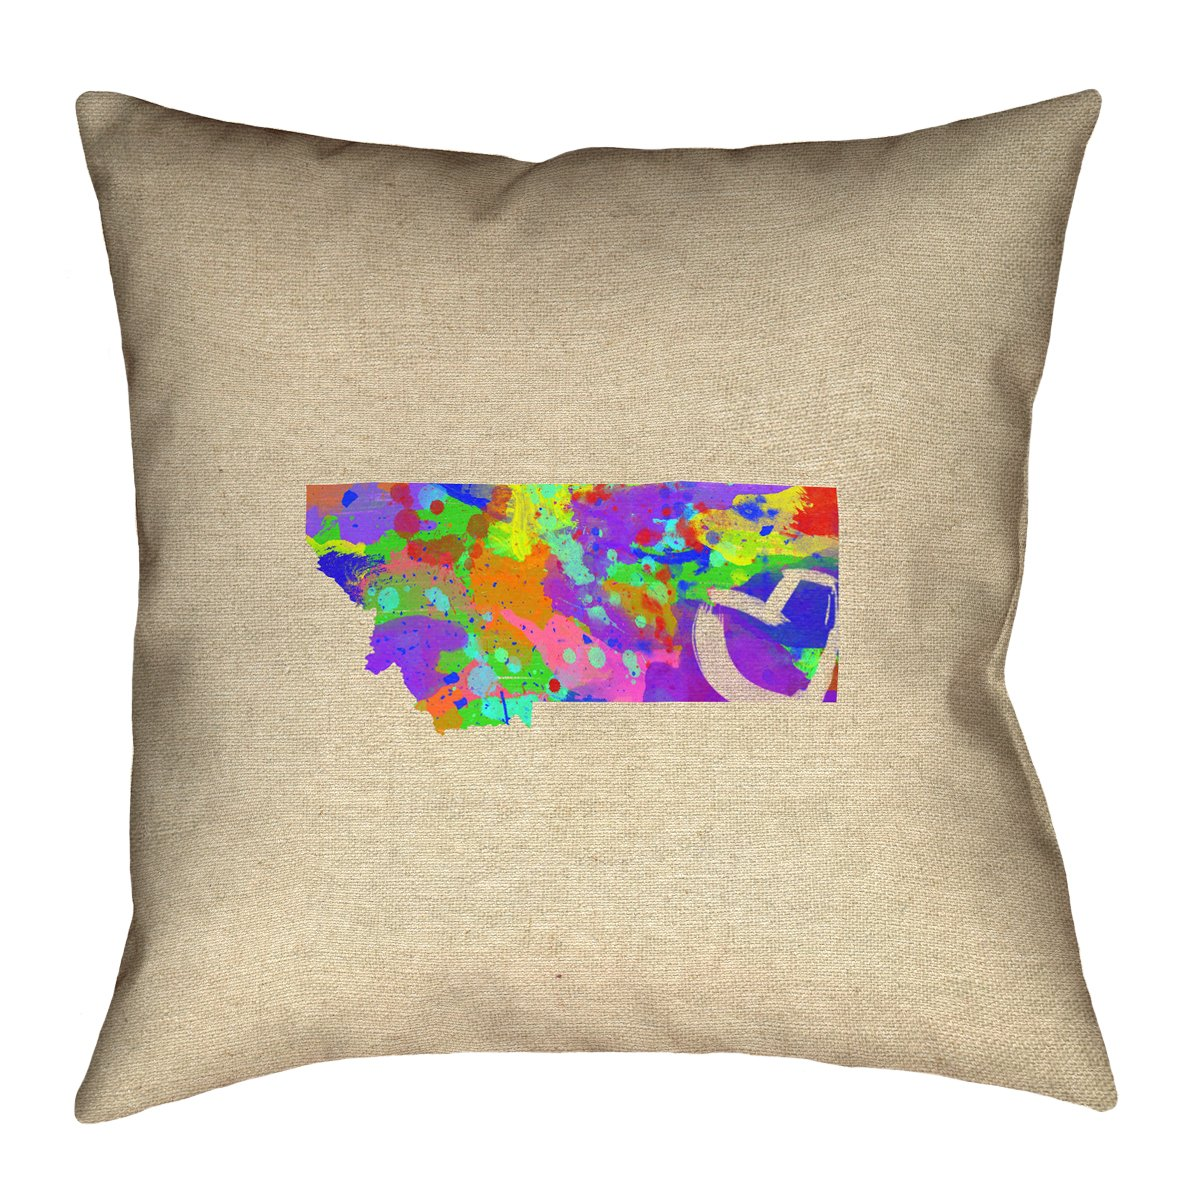 Double Sided Print with Concealed Zipper /& Insert Updated Fabric ArtVerse Katelyn Smith Montana Love Watercolor 20 x 20 Pillow-Faux Linen